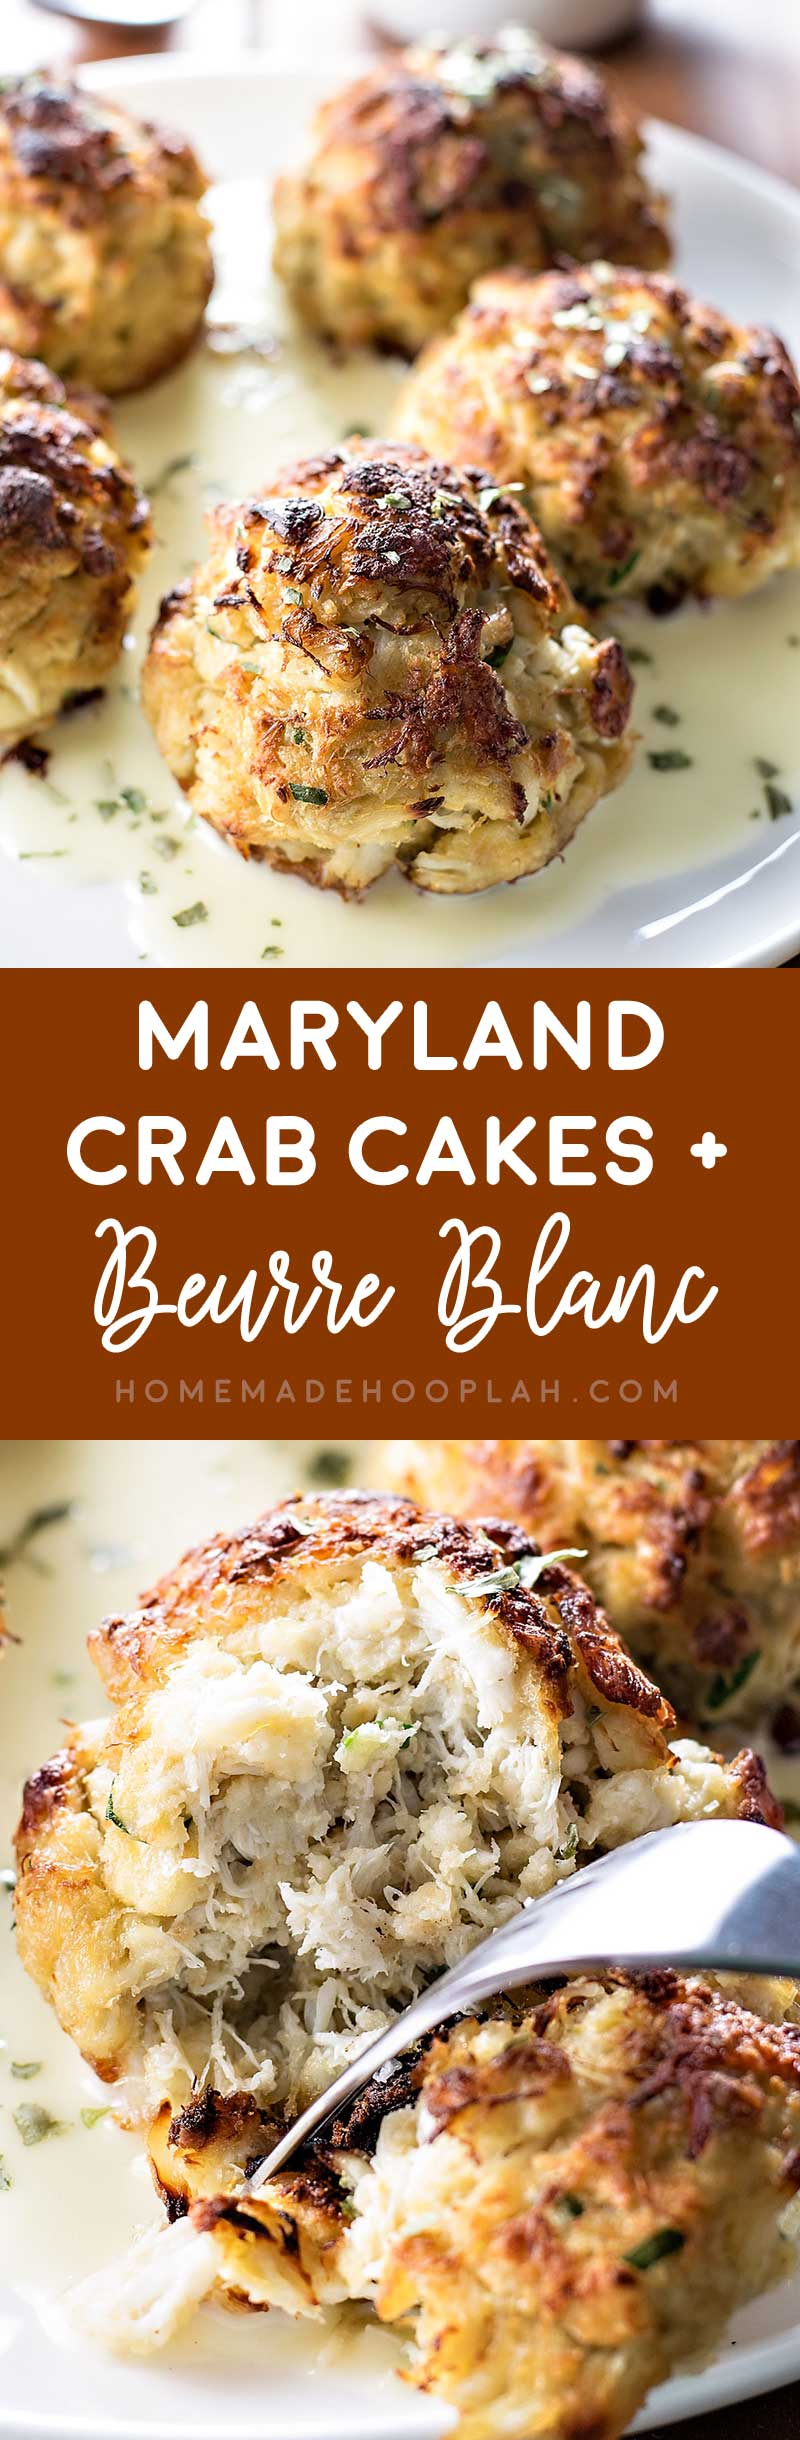 "Maryland Crab Cakes with Berrue Blanc! If you love the ""crab"" in Maryland style crab cakes, this recipe is for you: minimal breading and a light sauce makes the crab meat the star of this dish. 